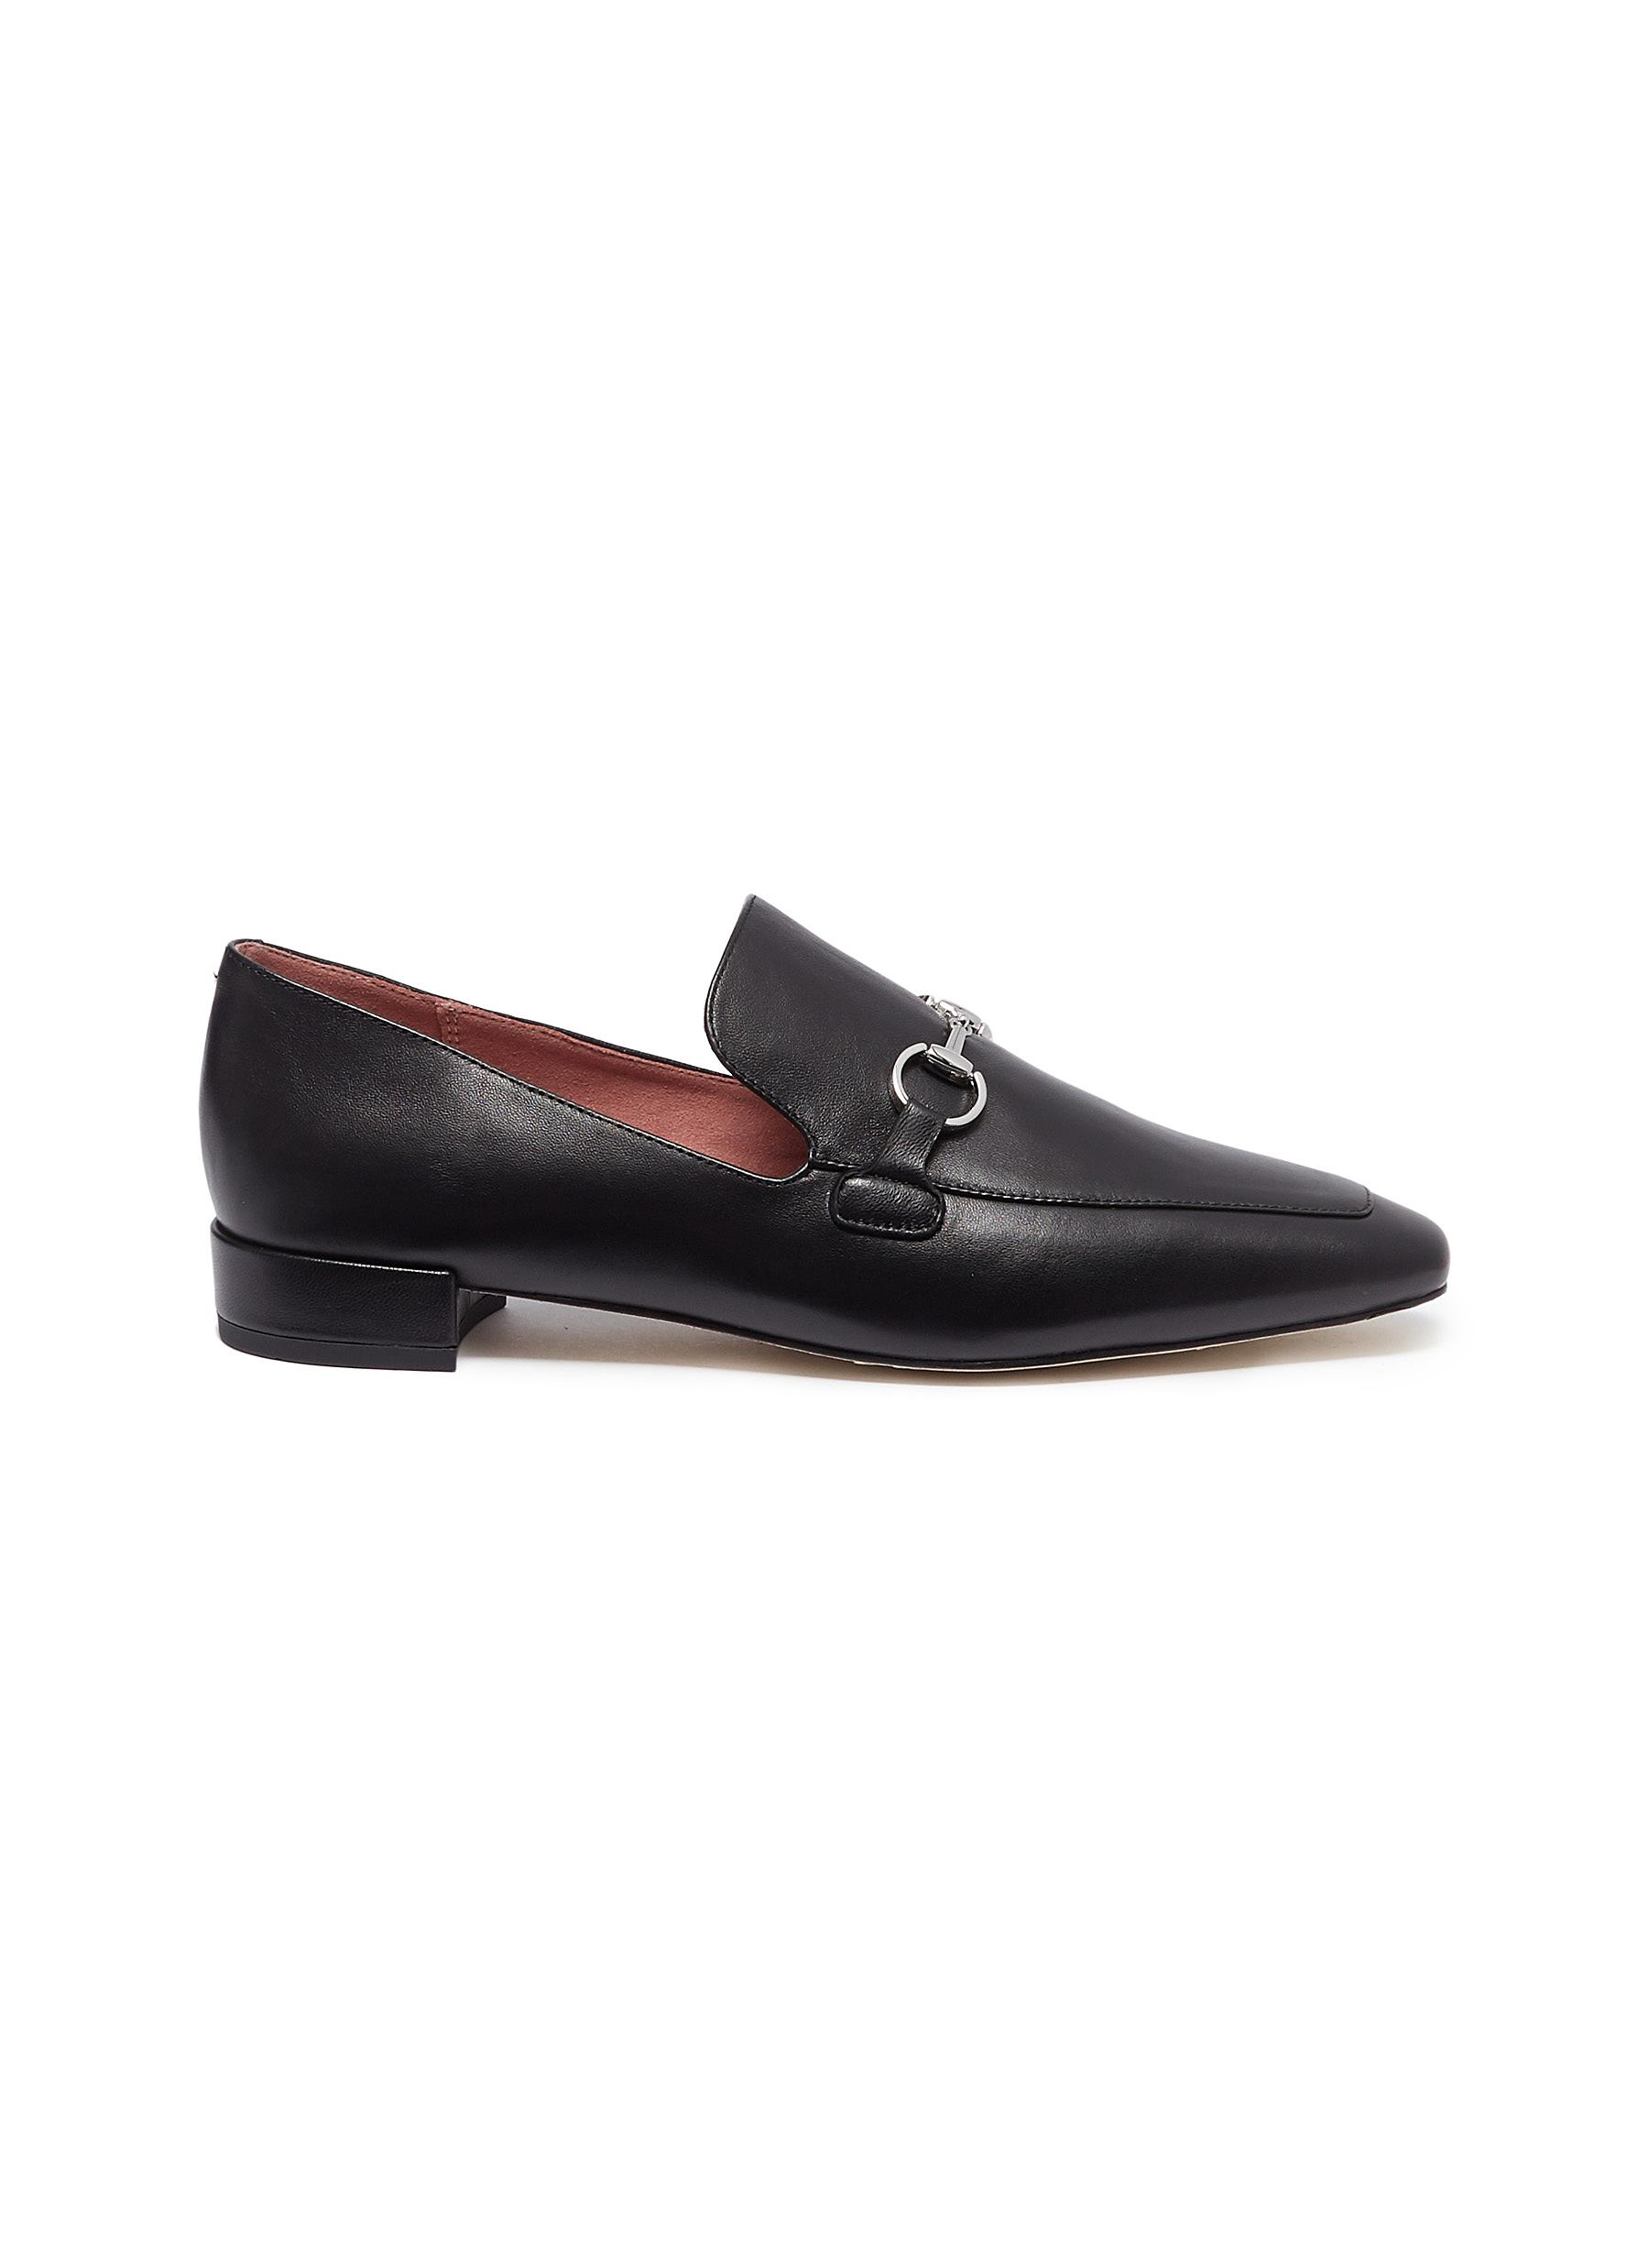 Pedder Red Flats Zack horsebit leather loafers